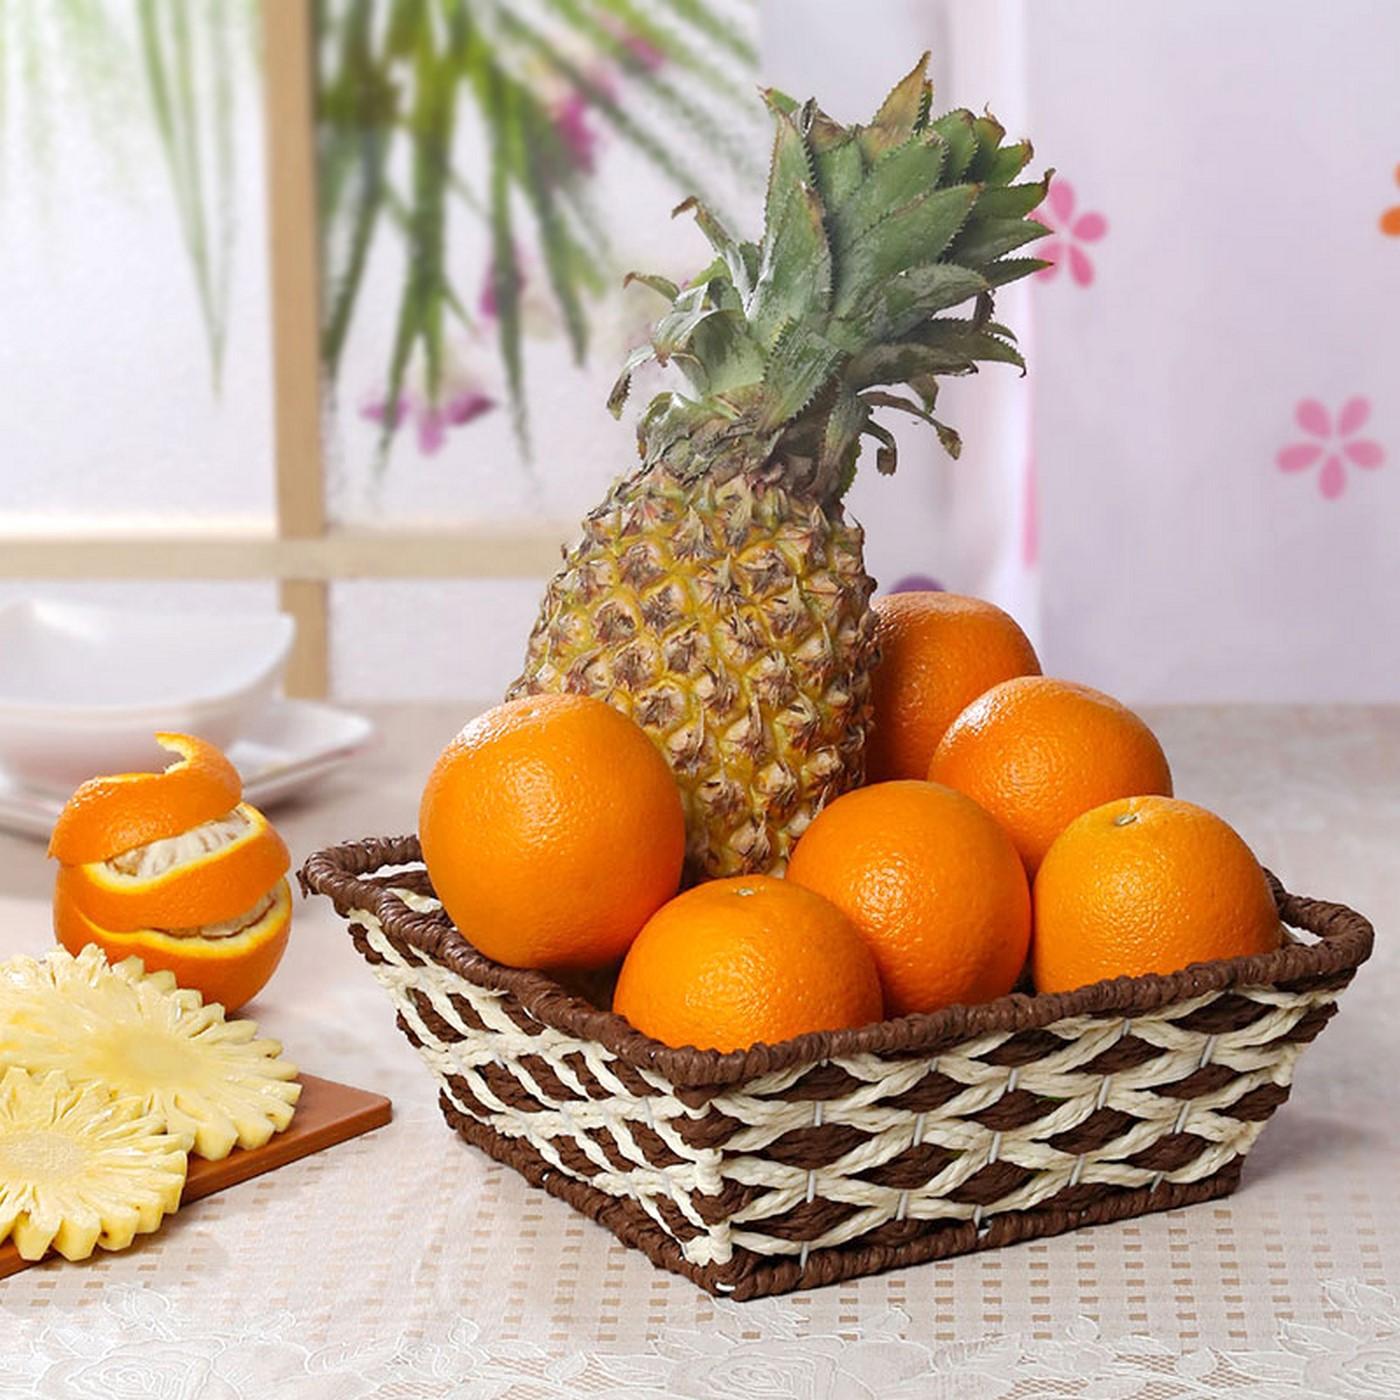 Basket of Oranges and Pineapple